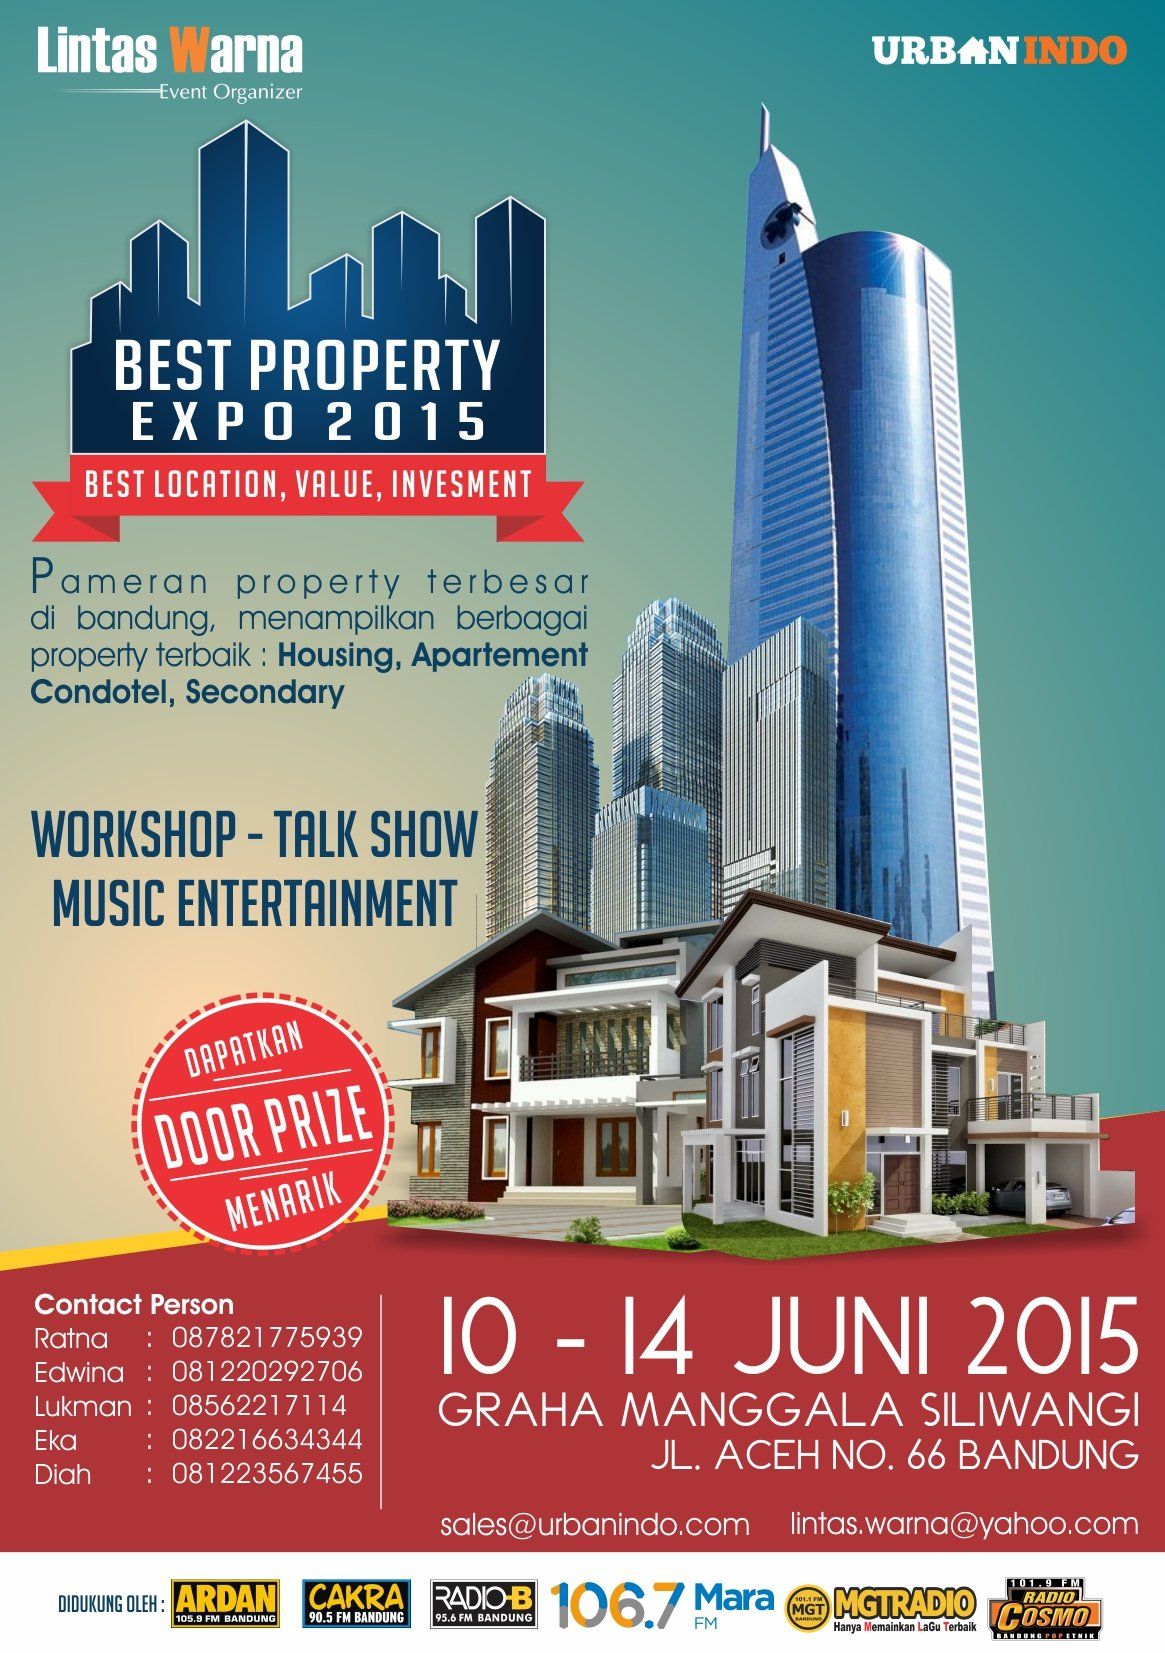 Best Property Expo 2015